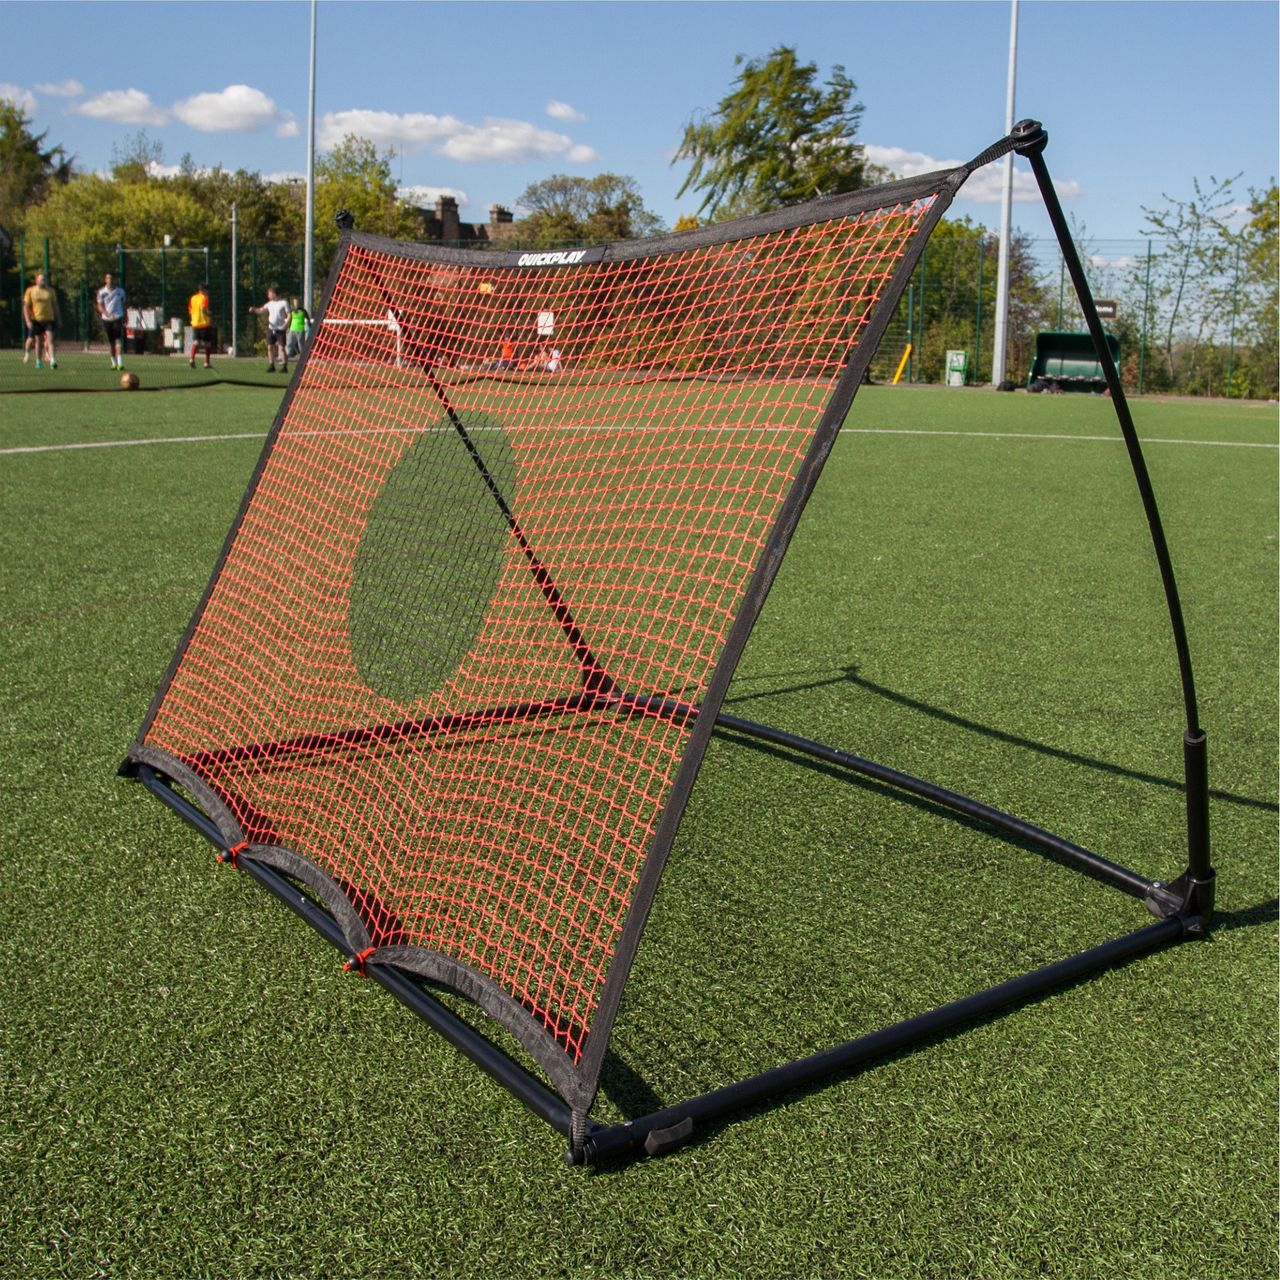 Quick Play SPOT Elite Mini Rebounder - 1 x 1.5m